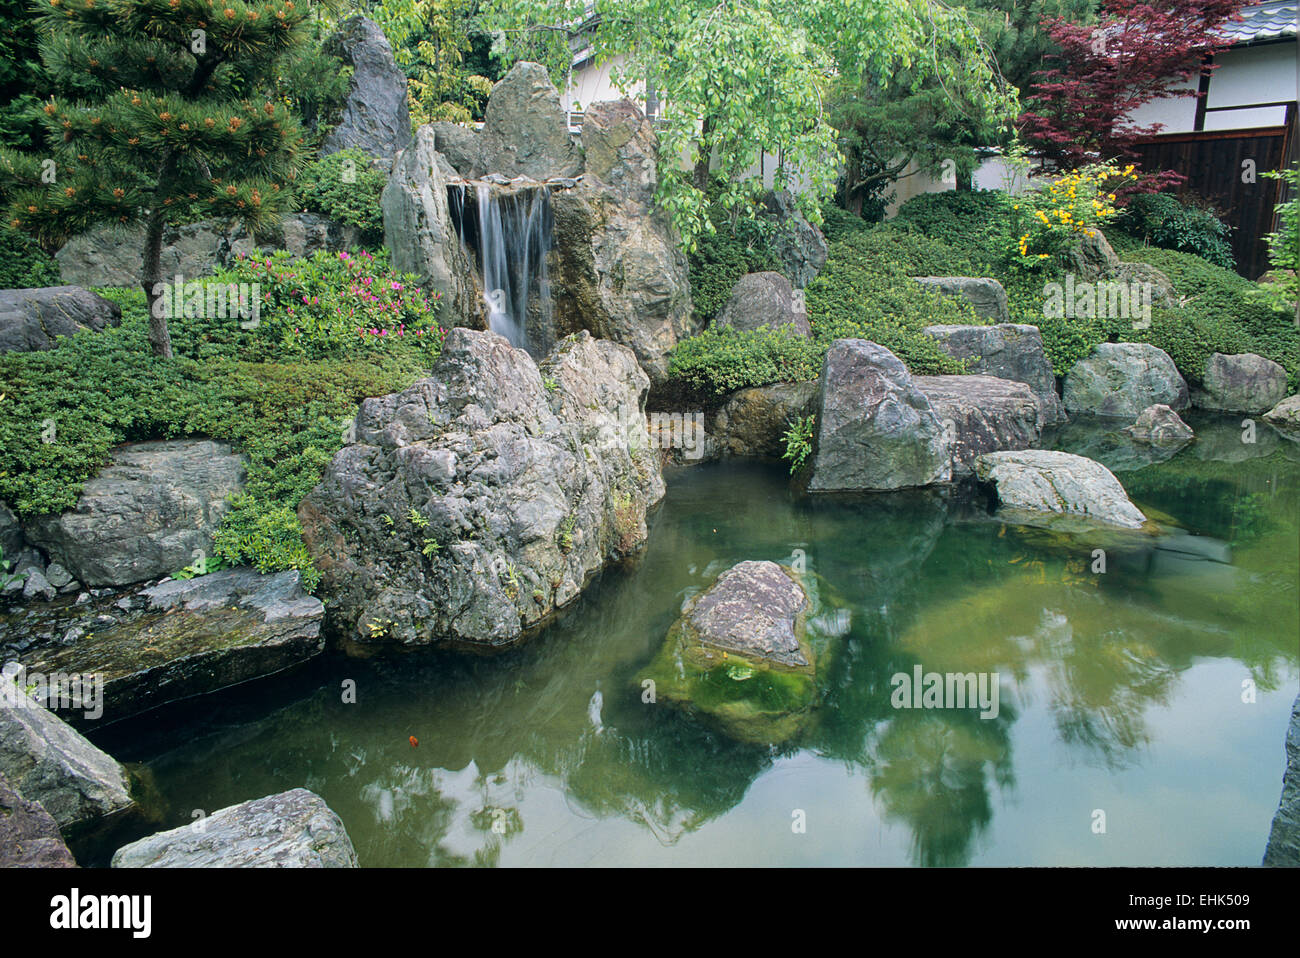 This pond and waterfall exemplifies the simple and natural design of many Japanese gardens. - Stock Image